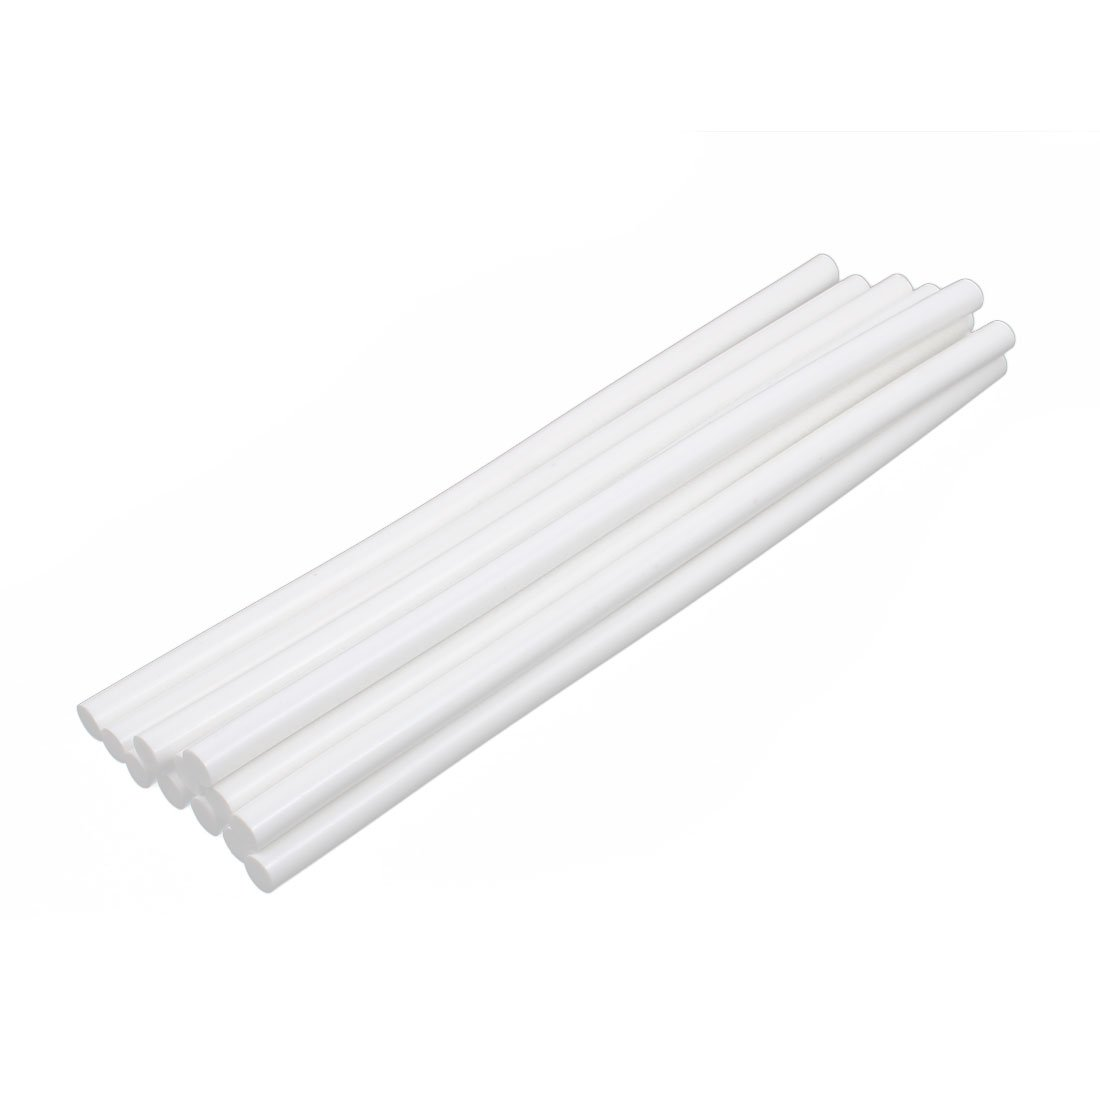 uxcell 12 Pcs 11mm x 300mm Hot Melt Glue Adhesive Stick Oyster White for Electric Tool Heating Gun